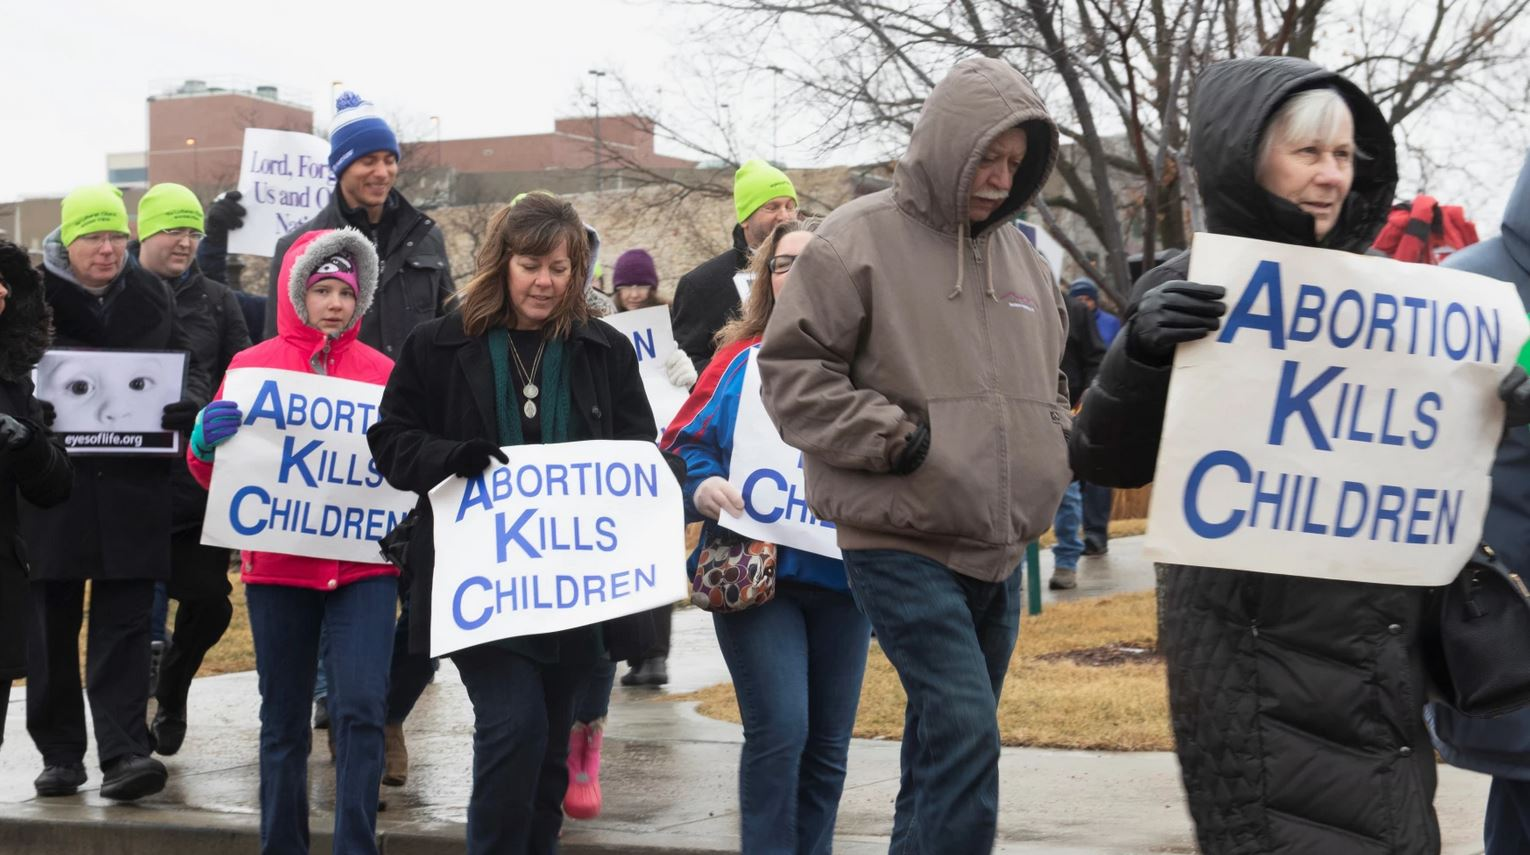 A rally at the Kansas Statehouse last year. (Photo by Daniel Caudill, Kansas News Service)